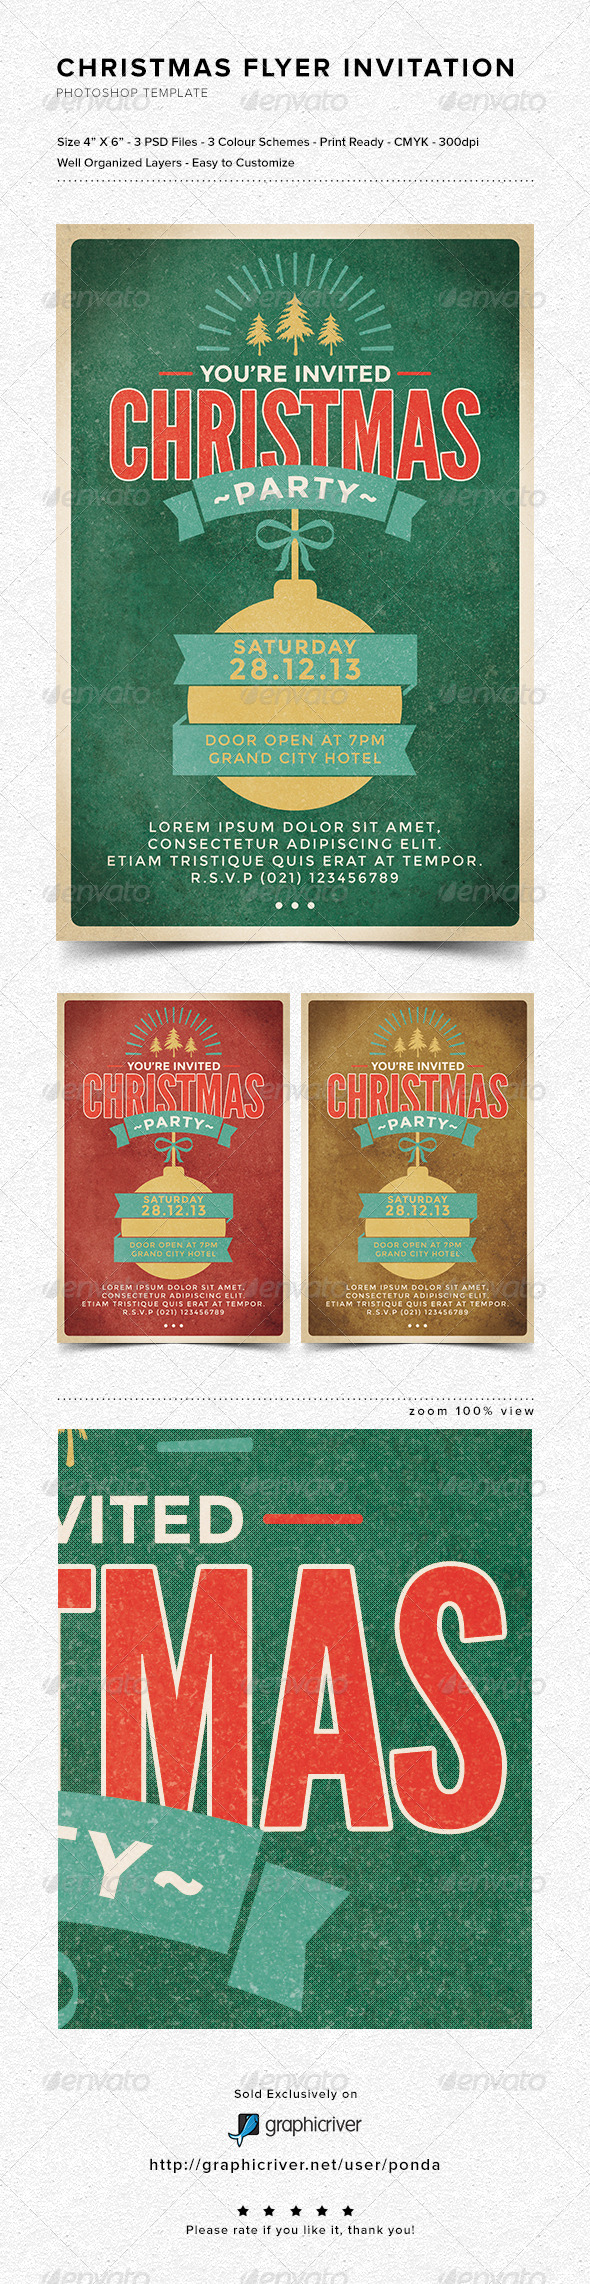 GraphicRiver Christmas Flyer Invitation 6314017